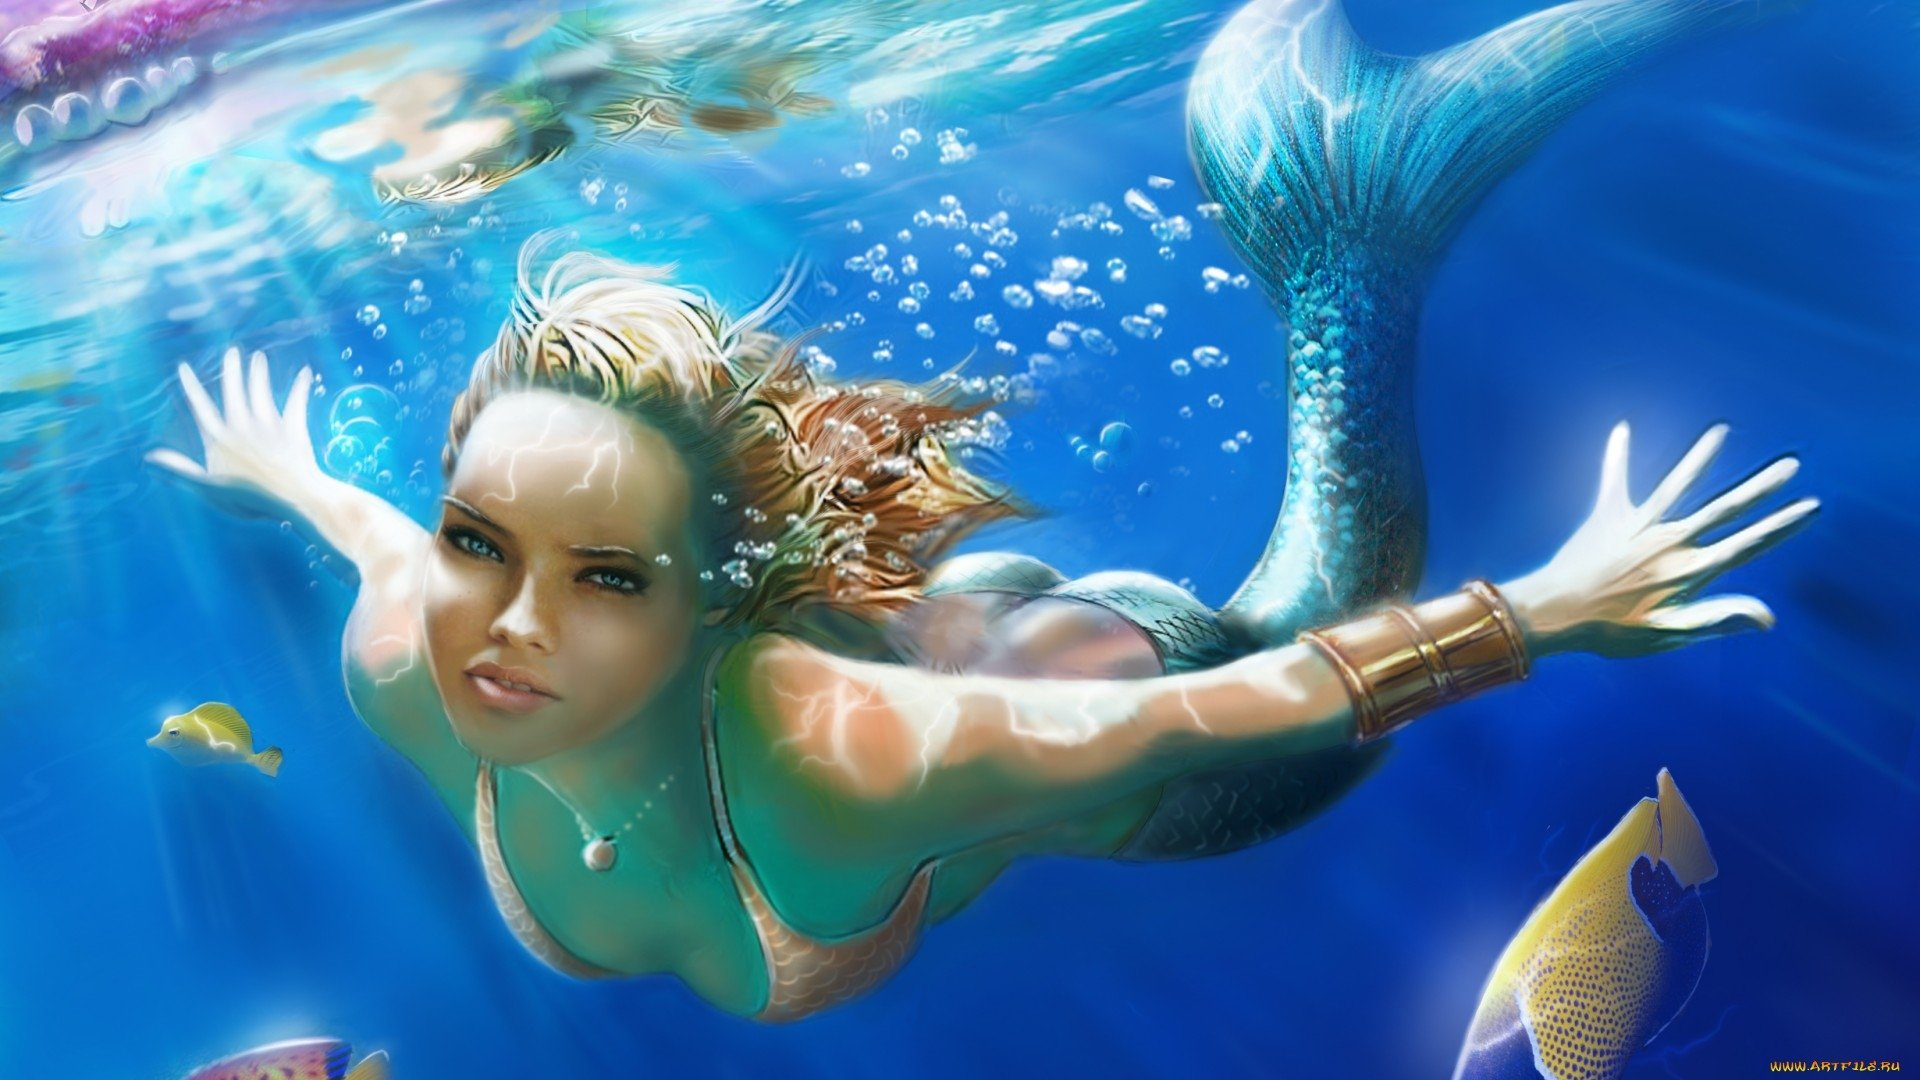 Dc Comics Wallpapers Hd Fondos De Pantalla De Sirenas Hermosas Wallpapers Hd Gratis